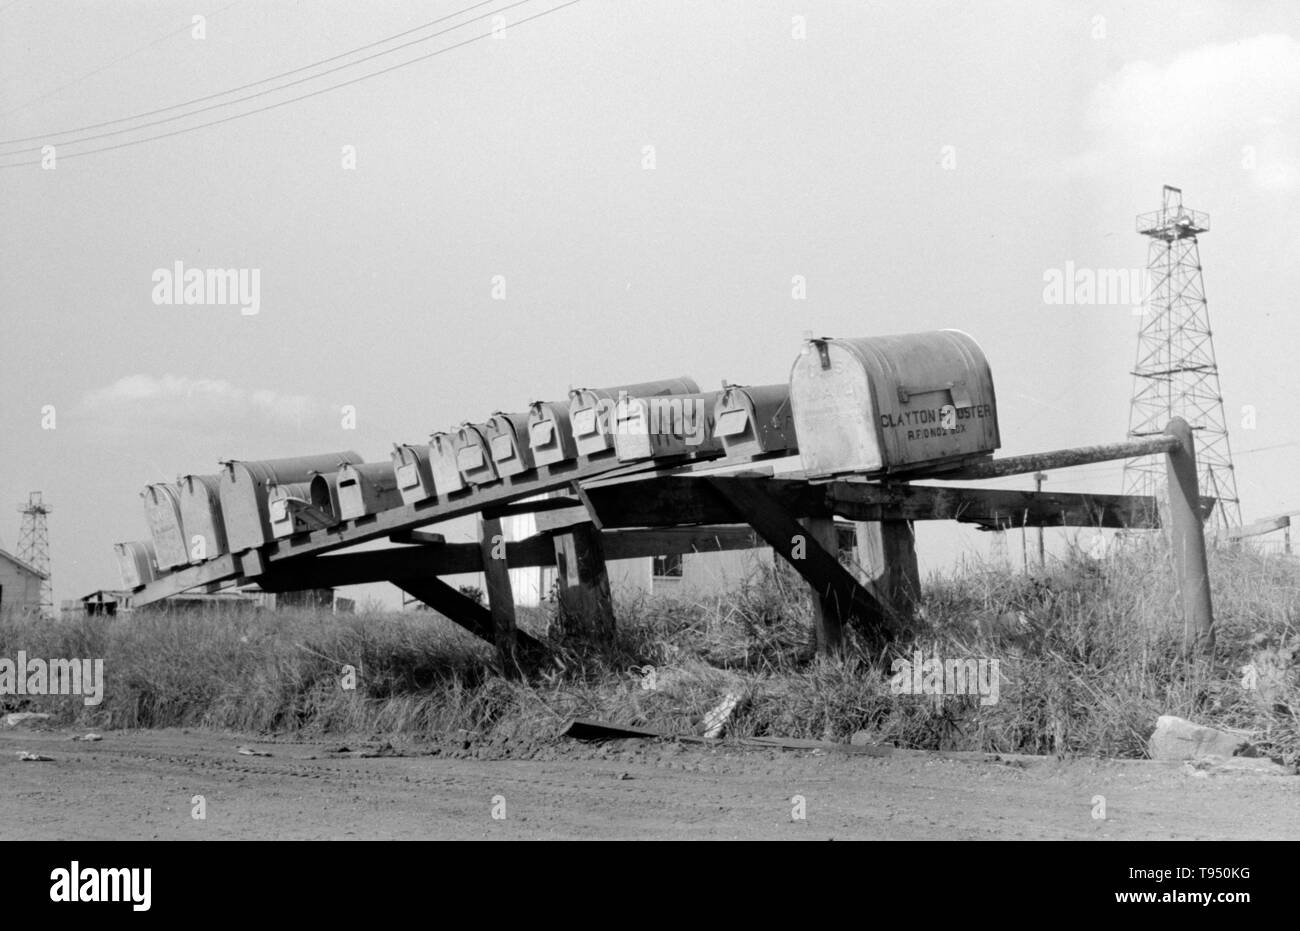 """Entitled: """"Mail boxes, Seminole oil field, Oklahoma."""" Before the introduction of rural free delivery (RFD) by the Post Office in 1896, many rural residents had no access to the mail unless they collected it at a post office located many miles from their homes or hired a private express company to deliver it. For this reason, mailboxes did not become popular in rural America until curbside RFD mail delivery by the Post Office was an established service. Stock Photo"""